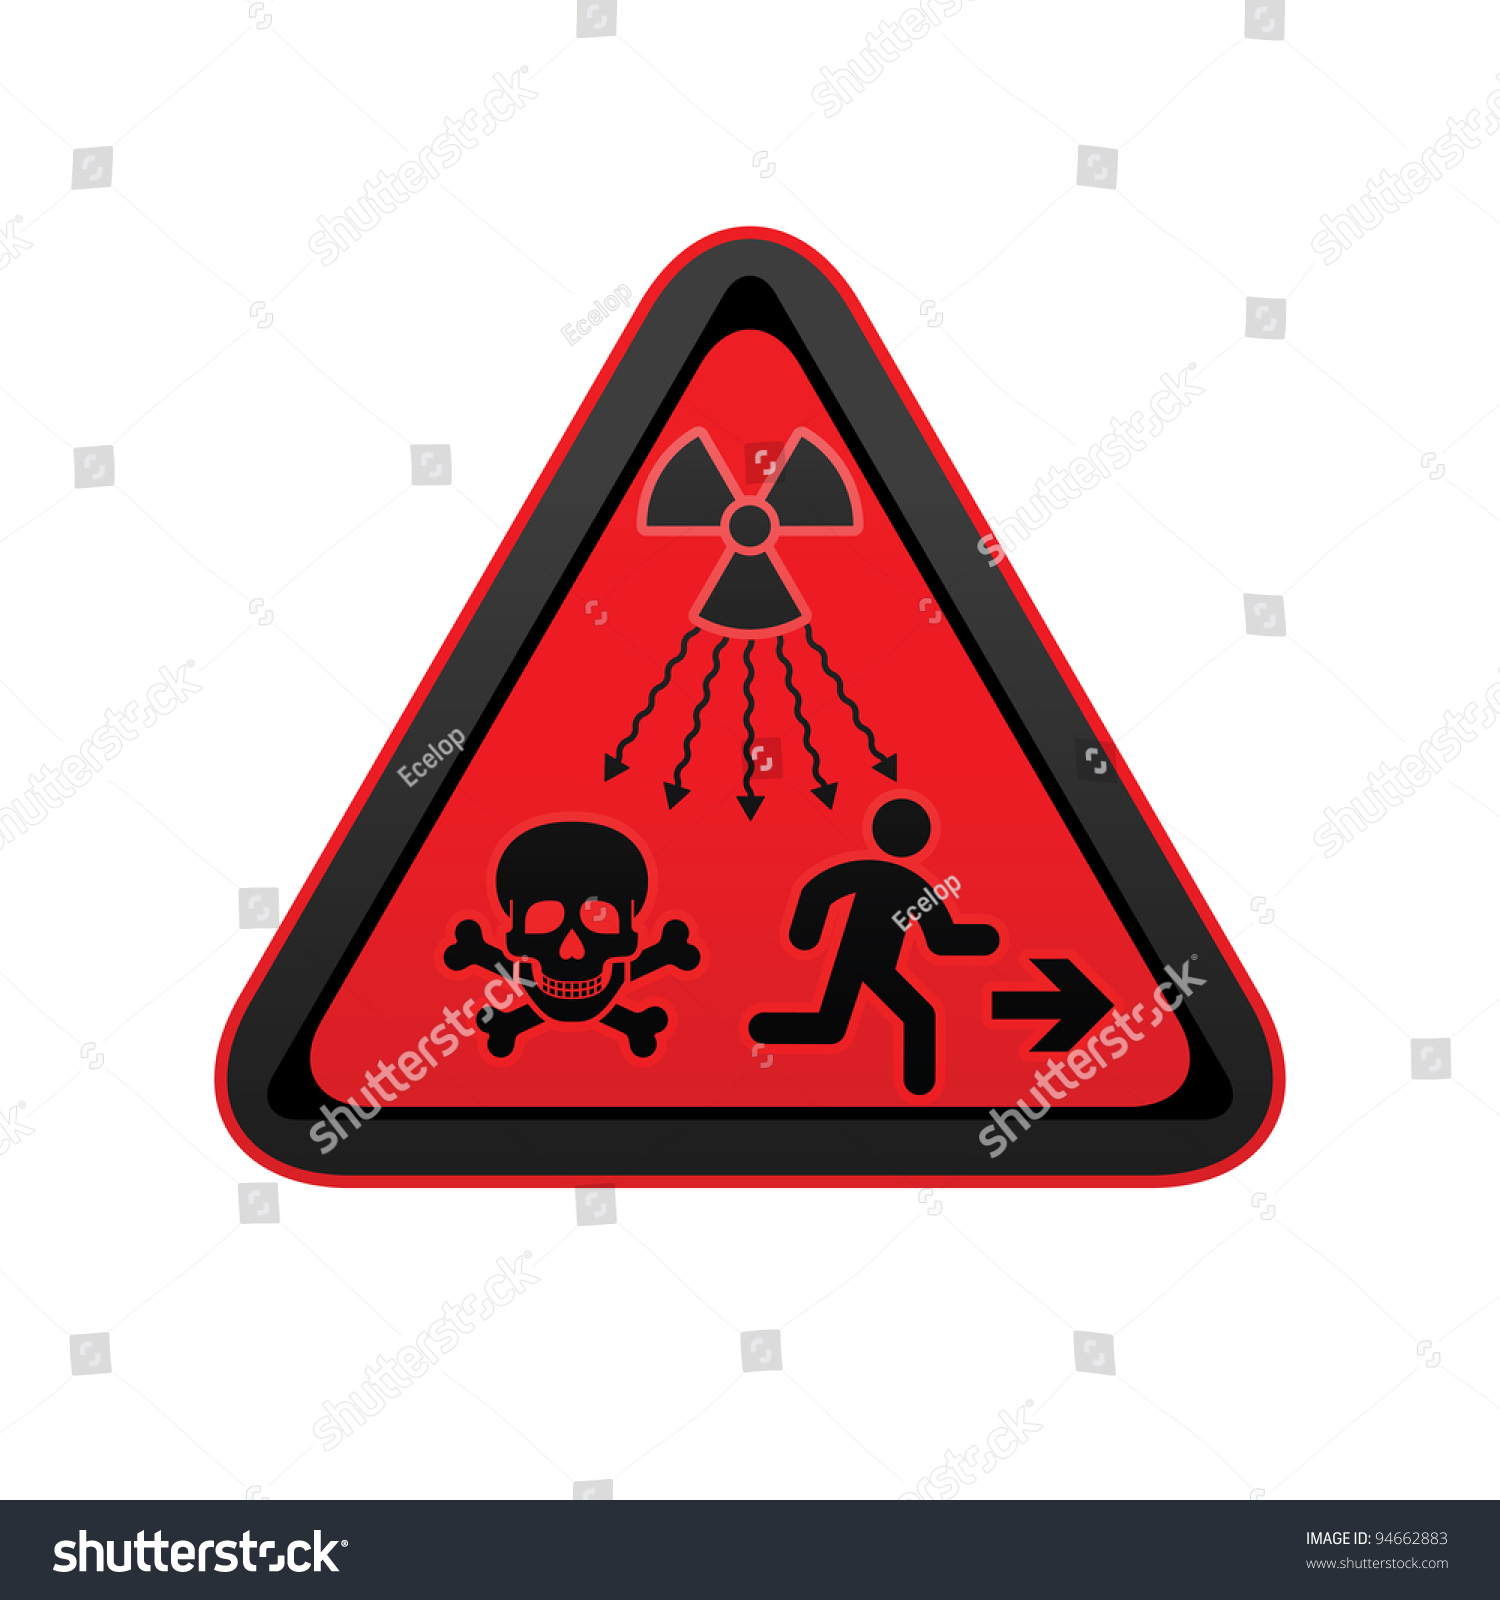 New iso standard ionizingradiation warning supplementary stock new iso standard ionizing radiation warning supplementary symbol new un radiation sign biocorpaavc Image collections